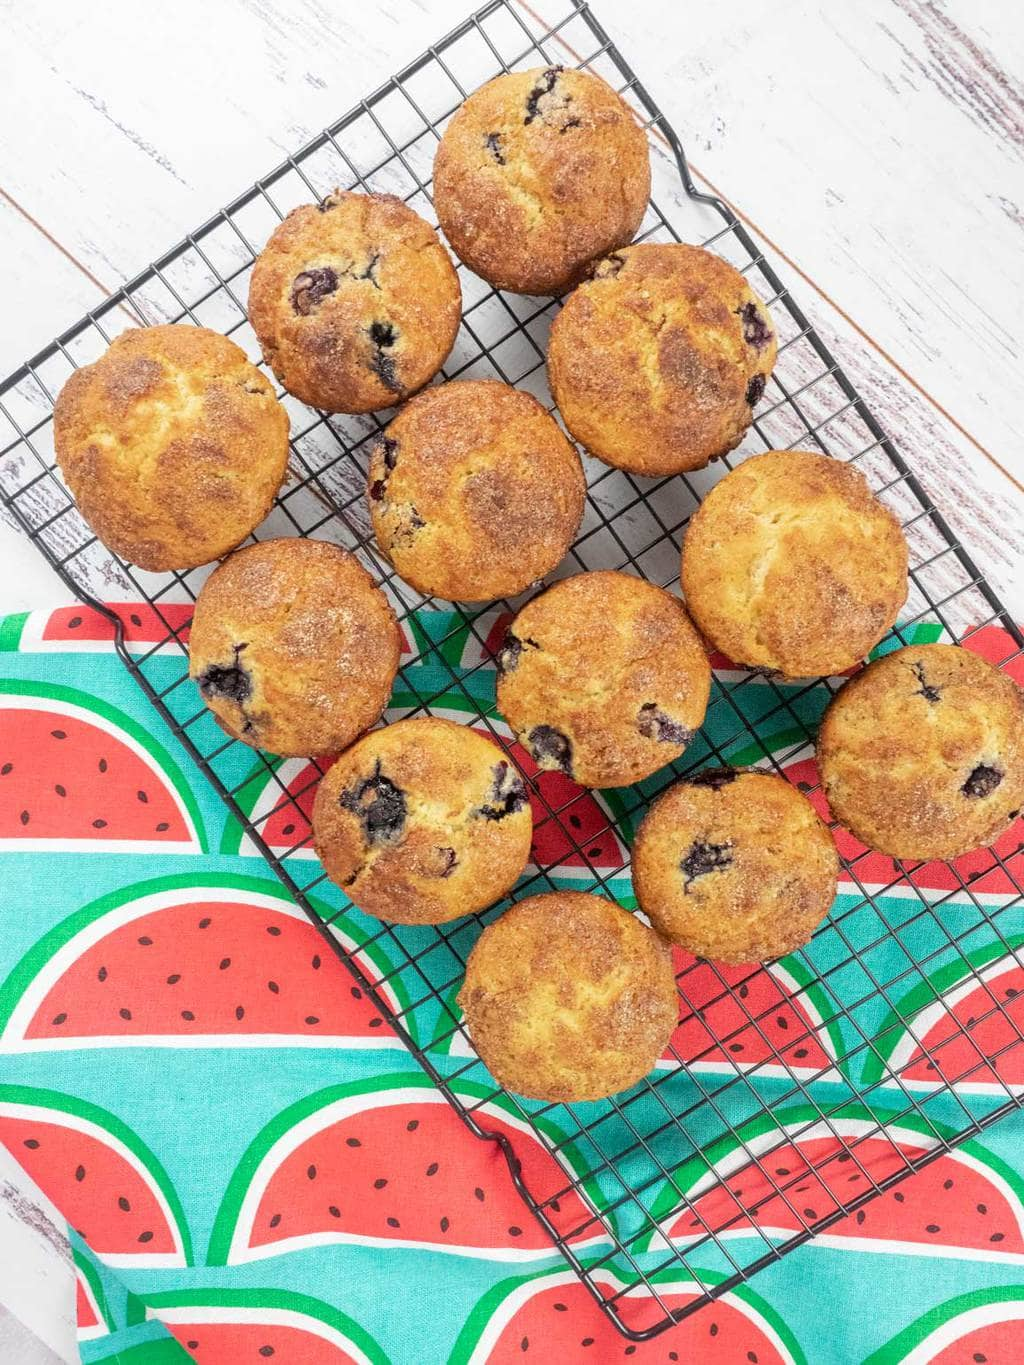 Blueberry and lemon muffins on cooling rack